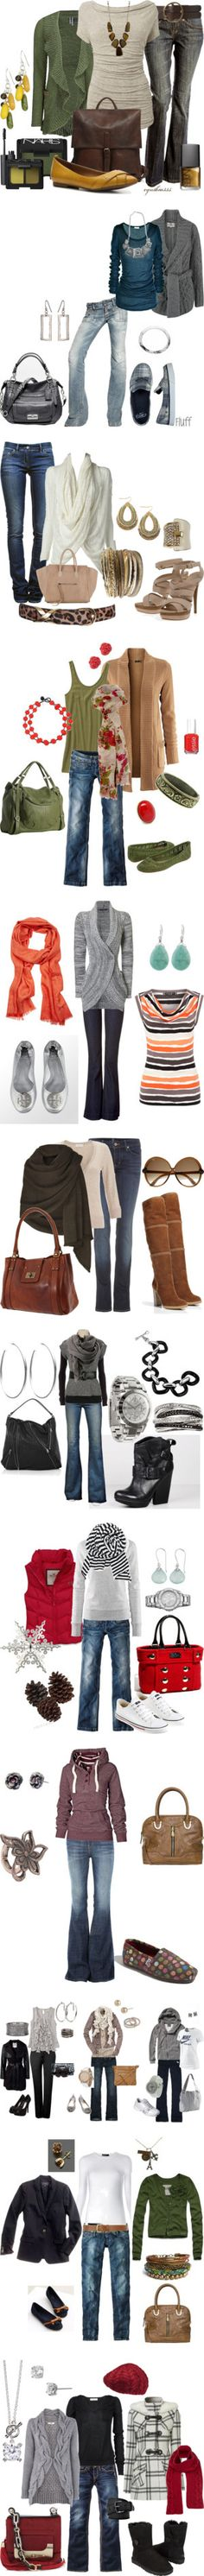 """""""Cozy casual"""" by tiffany-pierce ❤ liked on Polyvore"""